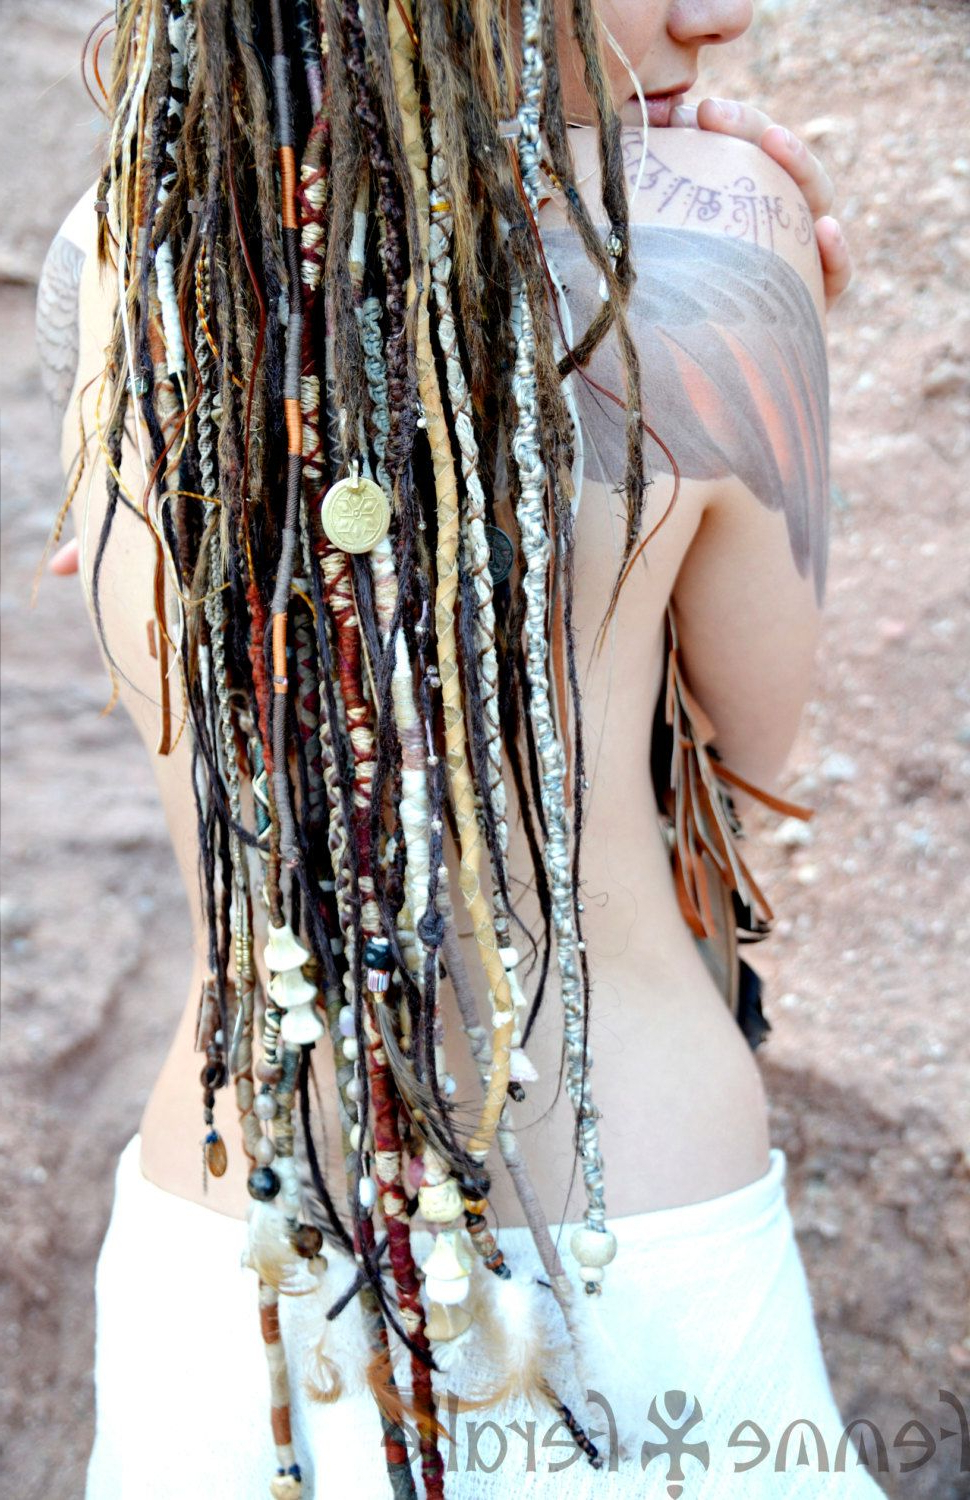 Most Current Braided Hairstyles With Beads And Wraps Within Medicine Woman Bohemian Hair Wraps Temporaryfemmeferalle (View 11 of 20)